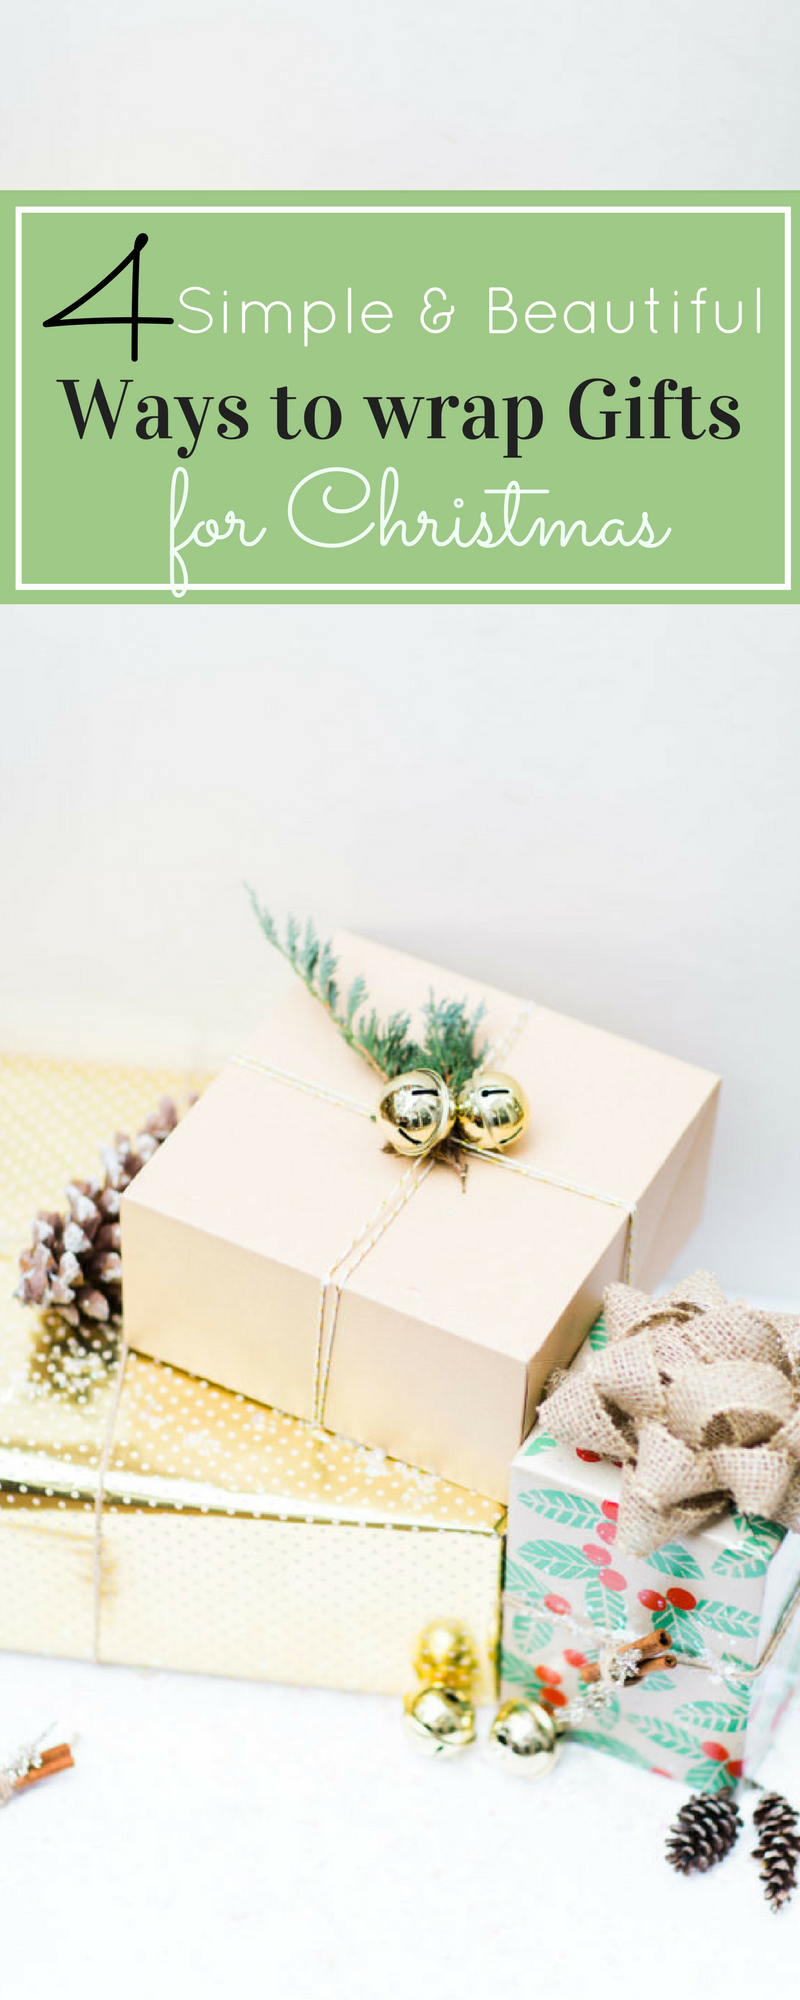 4 Simple (and Beautiful) Ways to Wrap Gifts this Holiday Season. Click through for the details. | glitterinc.com | @glitterinc